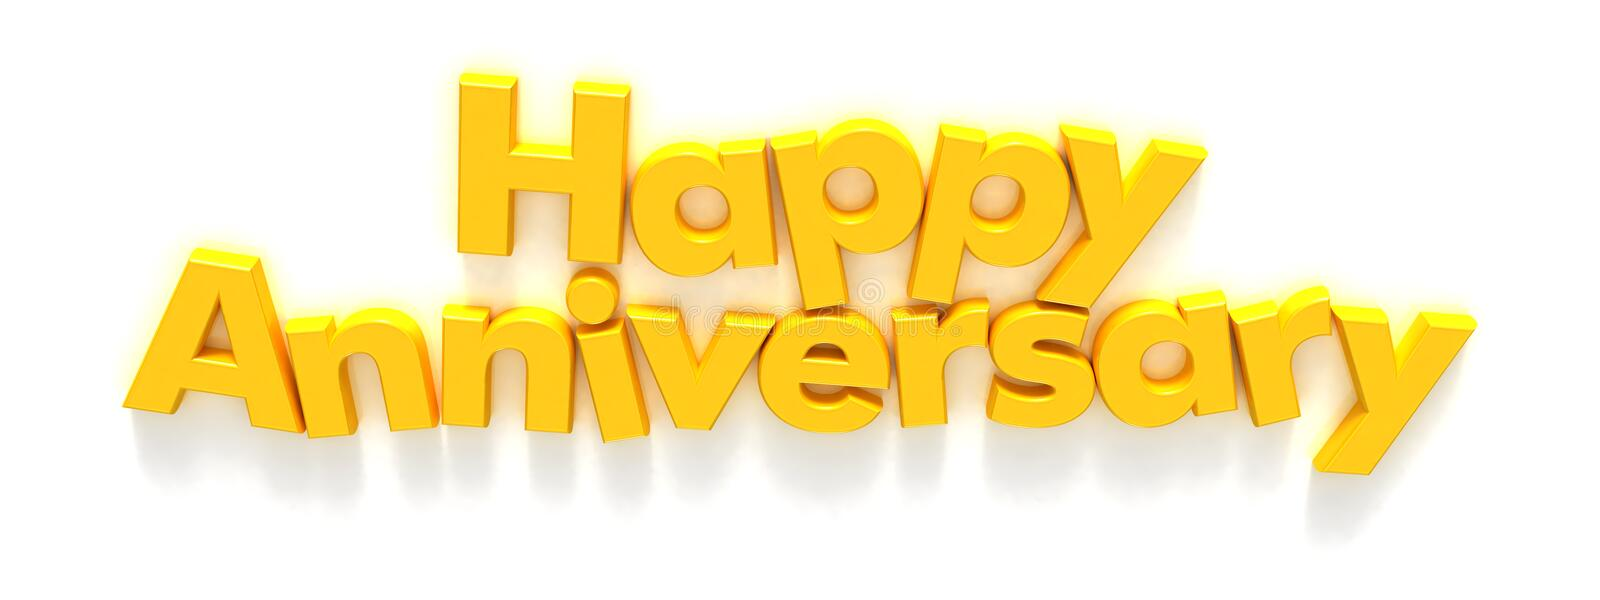 Happy Anniversary in yellow letter magnets royalty free illustration